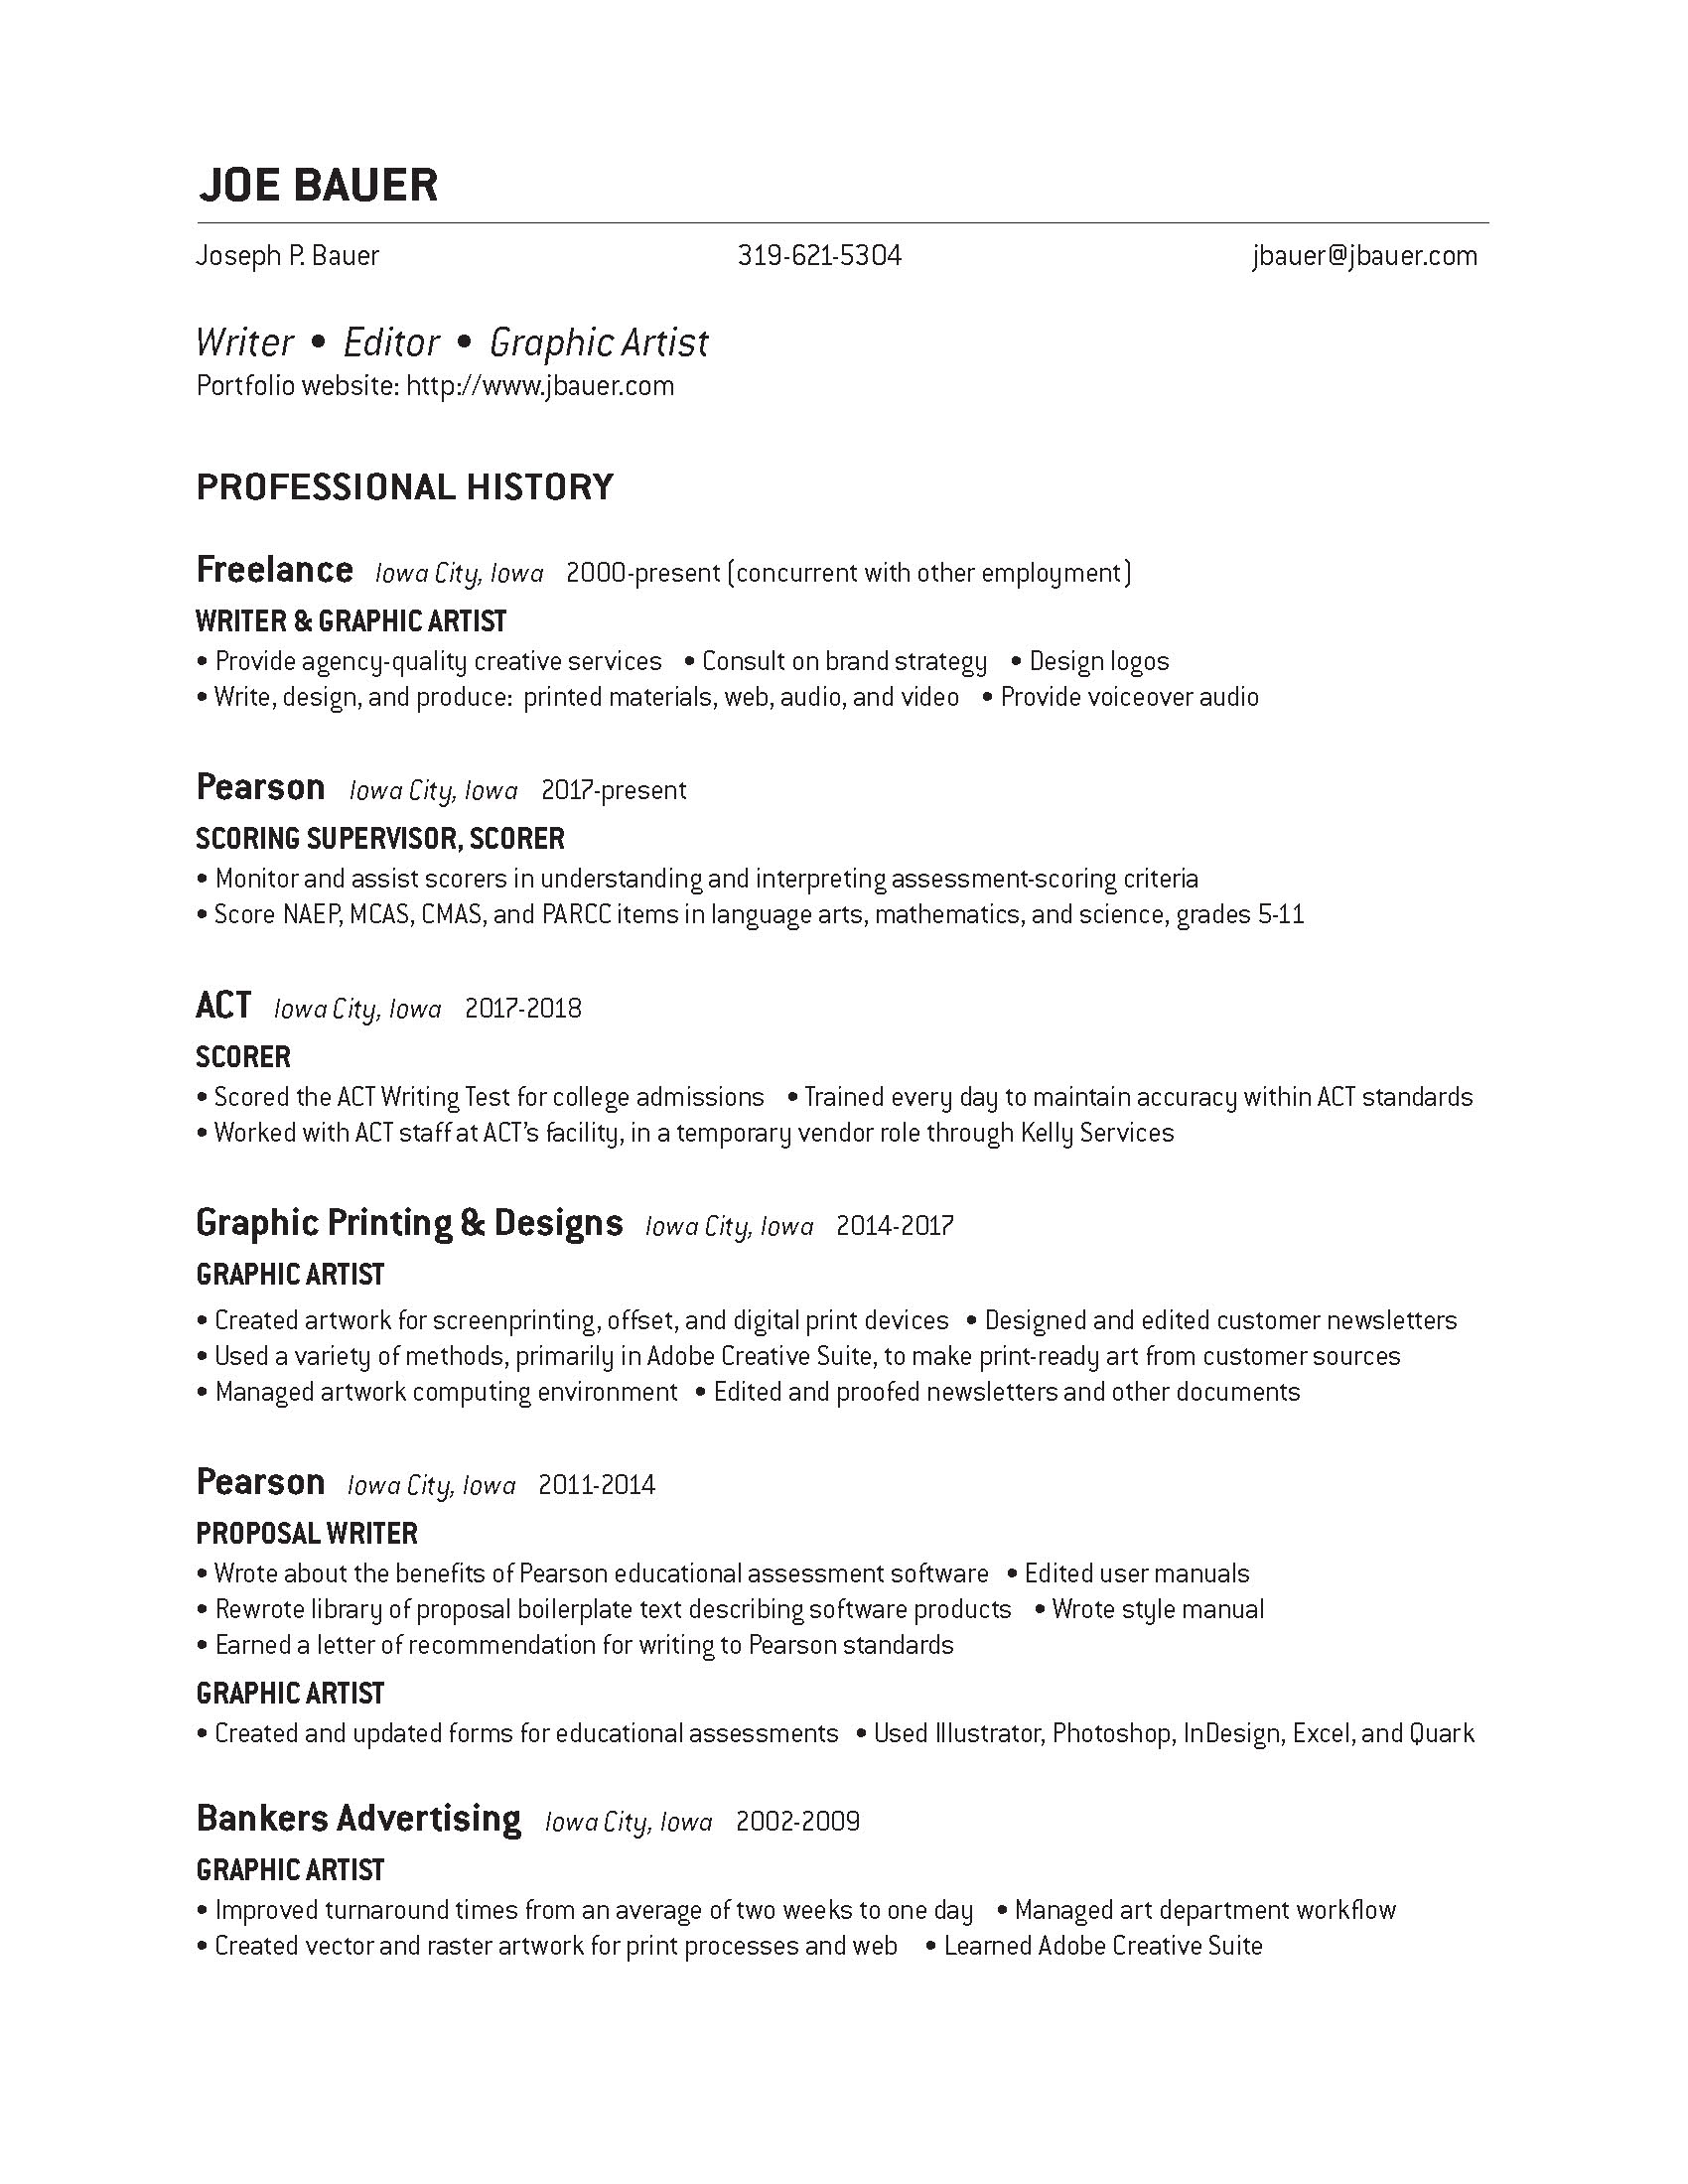 joe-bauer-resume-7-18a_page_1